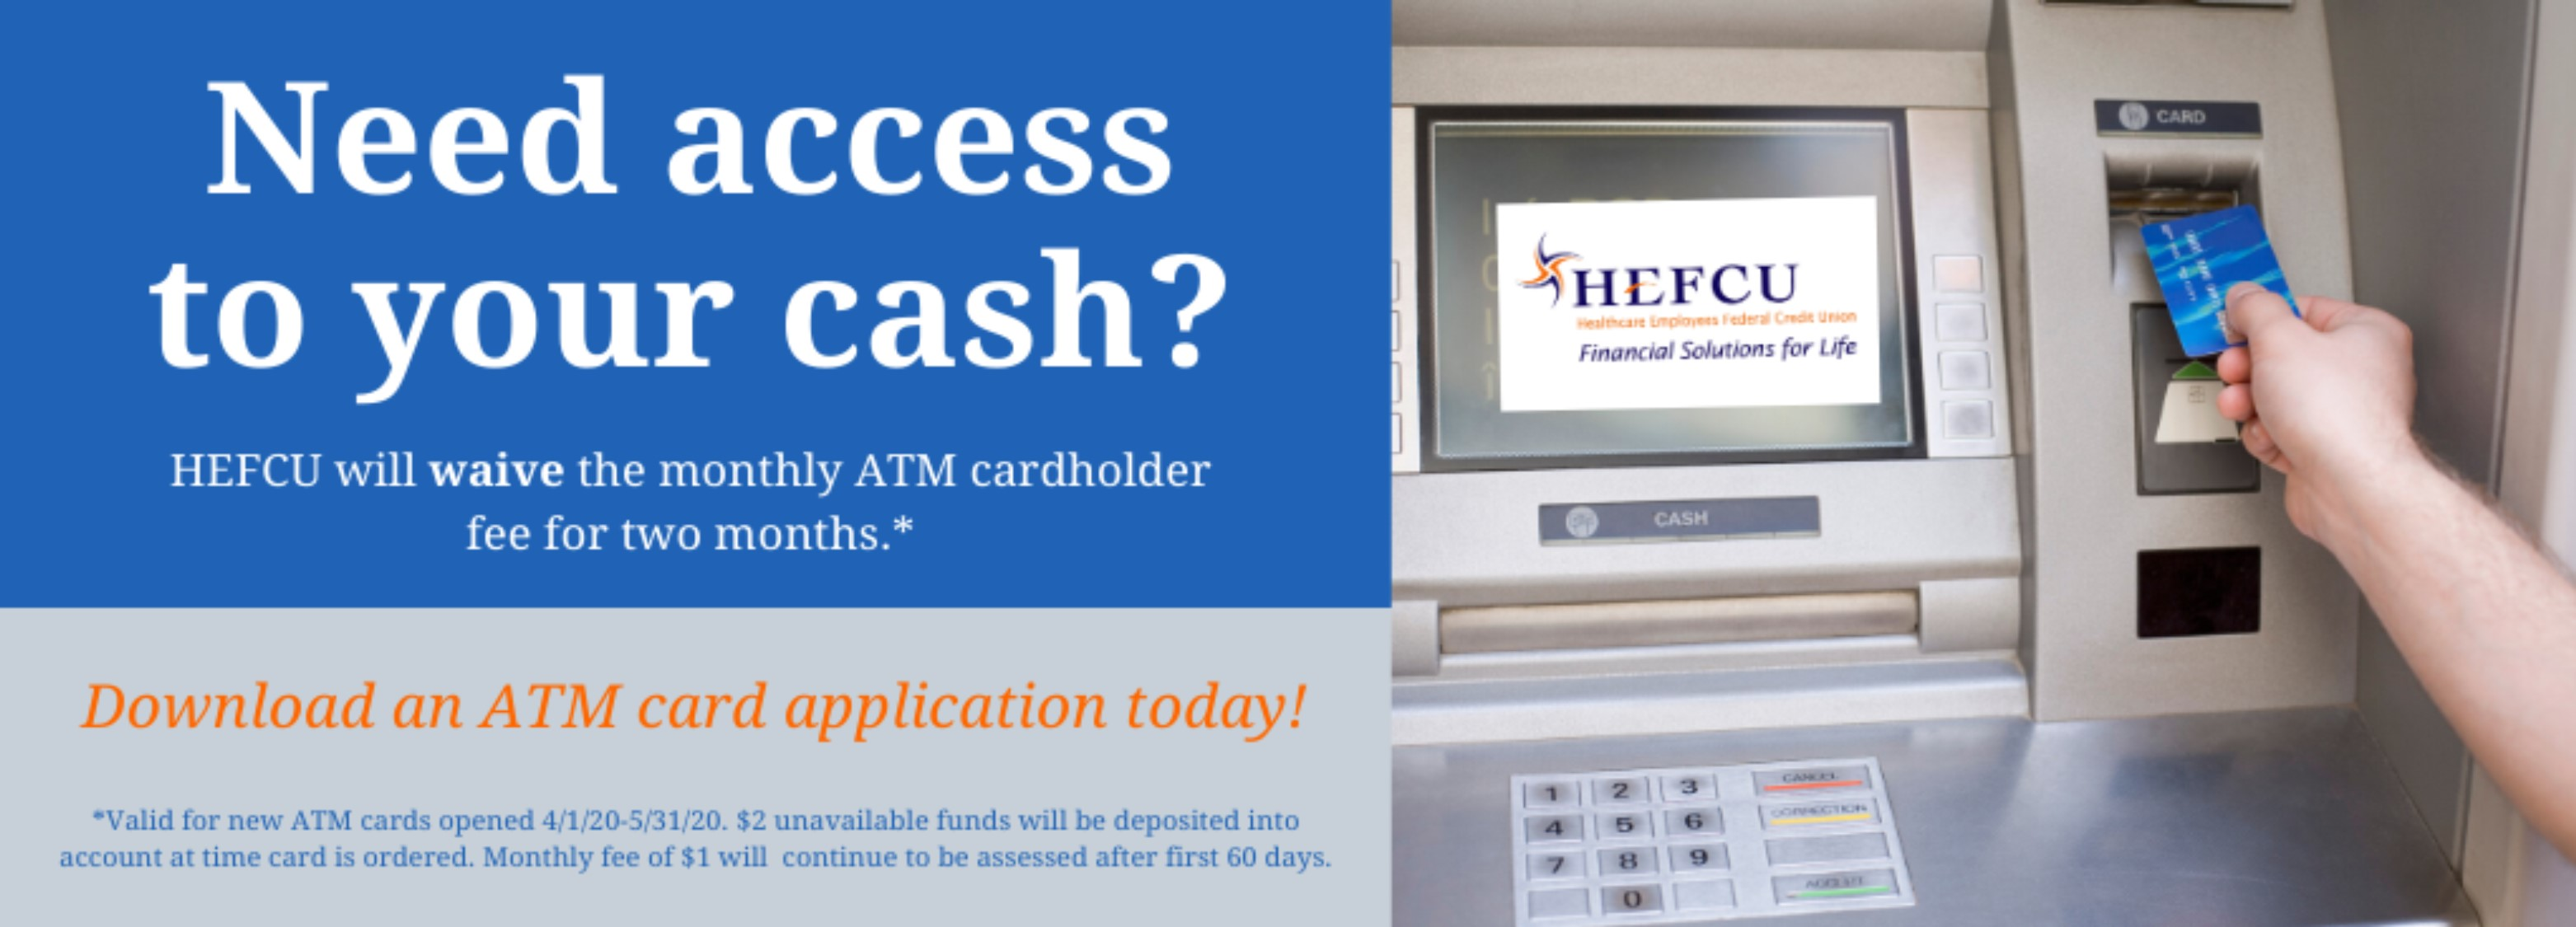 New ATM cardholders can get access to their cash with the fee waived for the first 60 days. Download the ATM application today by visiting https://www.hefcu.com/wp-content/uploads/2020/04/ATM_Debit_Application_2011.pdf and email your completed application to hefcu@hefcu.com.